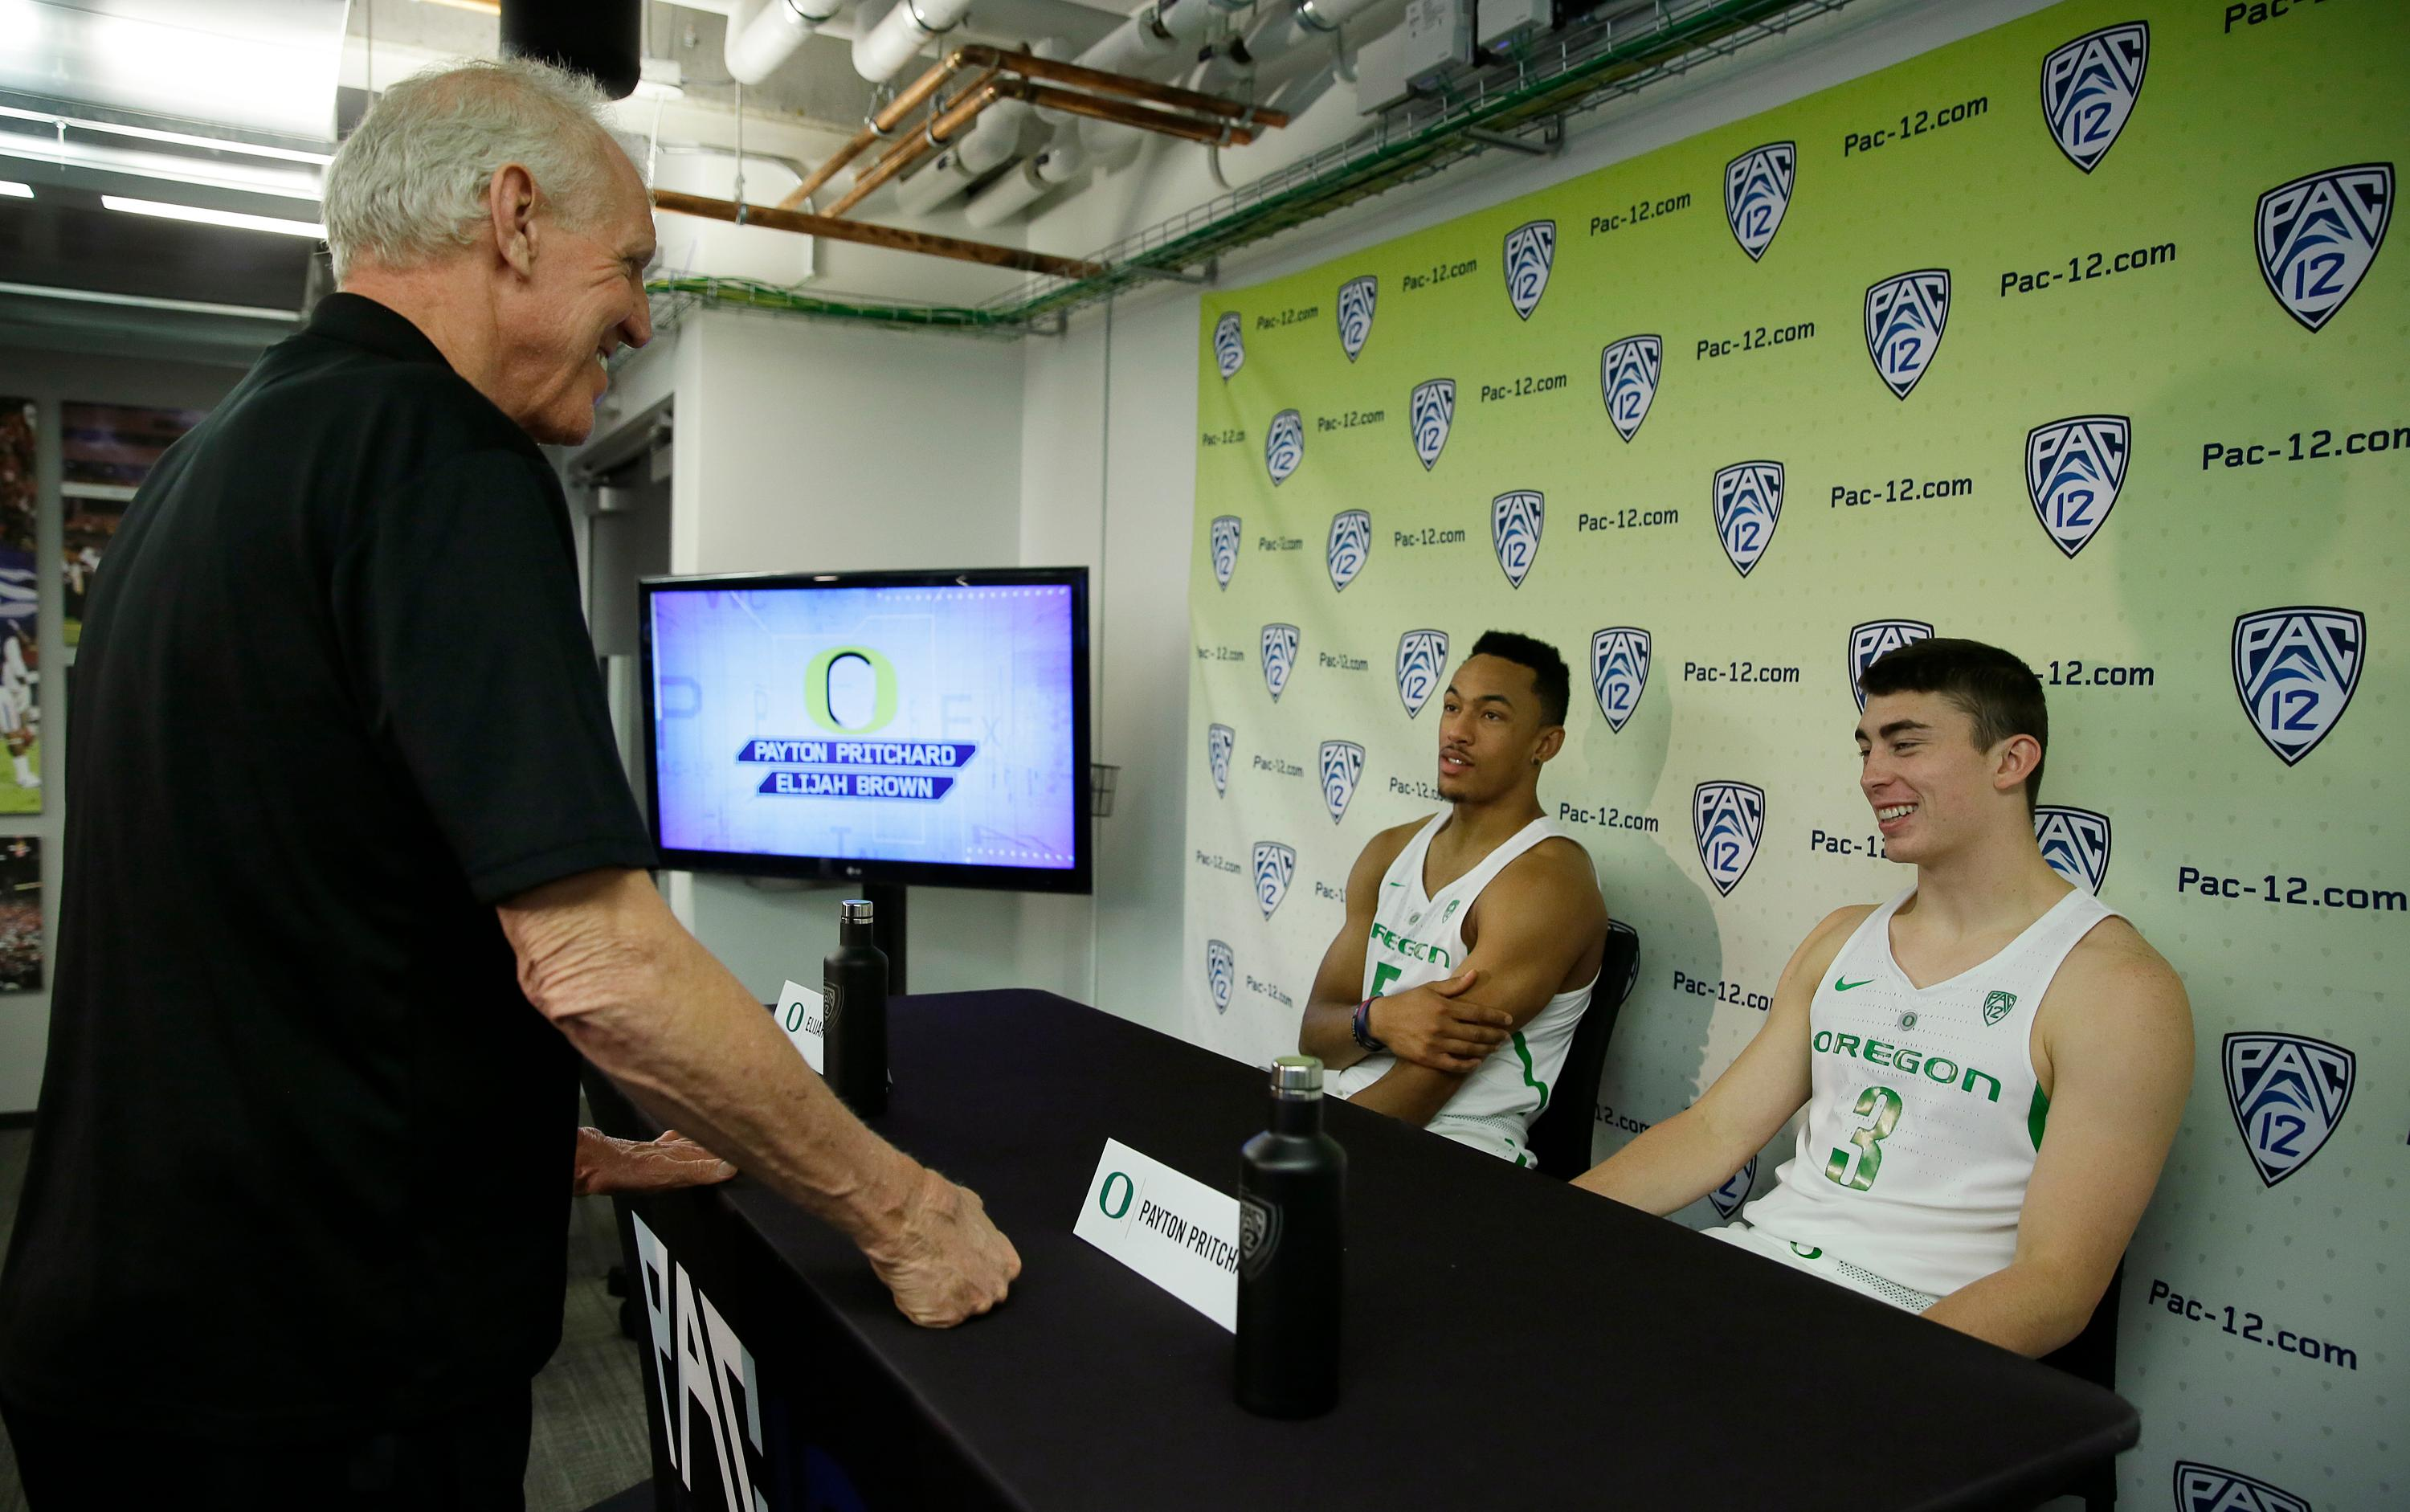 FILE - In this Oct. 12, 2017, file photo, Bill Walton, left, talks with Oregon guards Elijah Brown, center, and Payton Pritchard during the Pac-12's NCAA college basketball media day, in San Francisco. A few of last year's Final Four teams have added transfers to help restock their rosters. The Ducks had to replace four starters from last year's Final Four team and responded by adding a pair of graduate transfers - Elijah Brown from New Mexico and MiKyle McIntosh from Illinois State. (AP Photo/Eric Risberg, File)